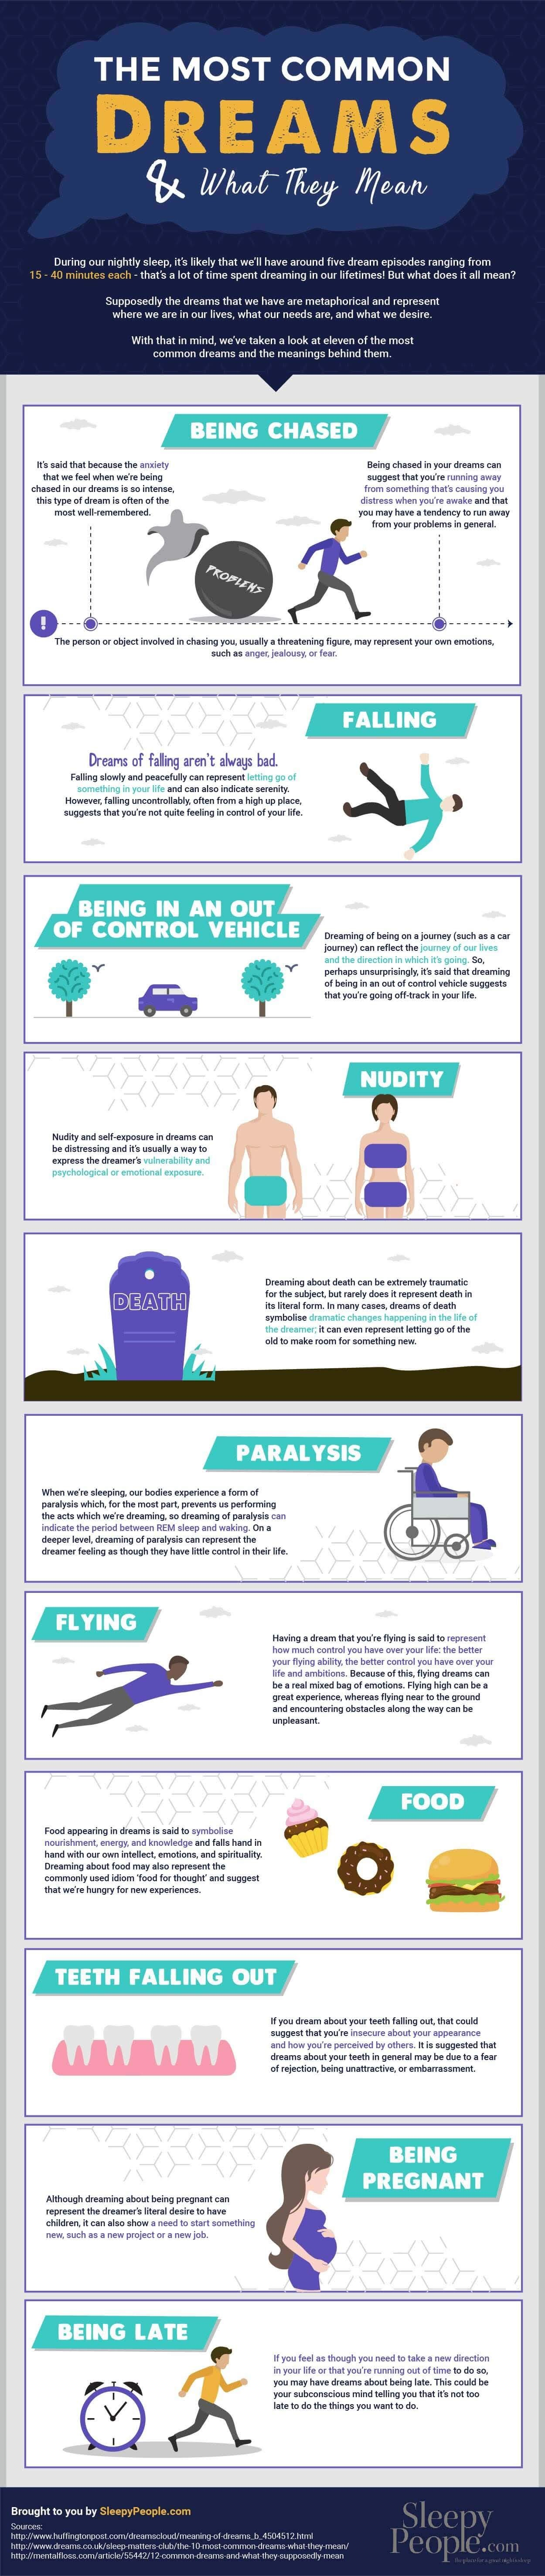 The 11 Most Common Dreams And What They Mean [INFOGRAPHIC]